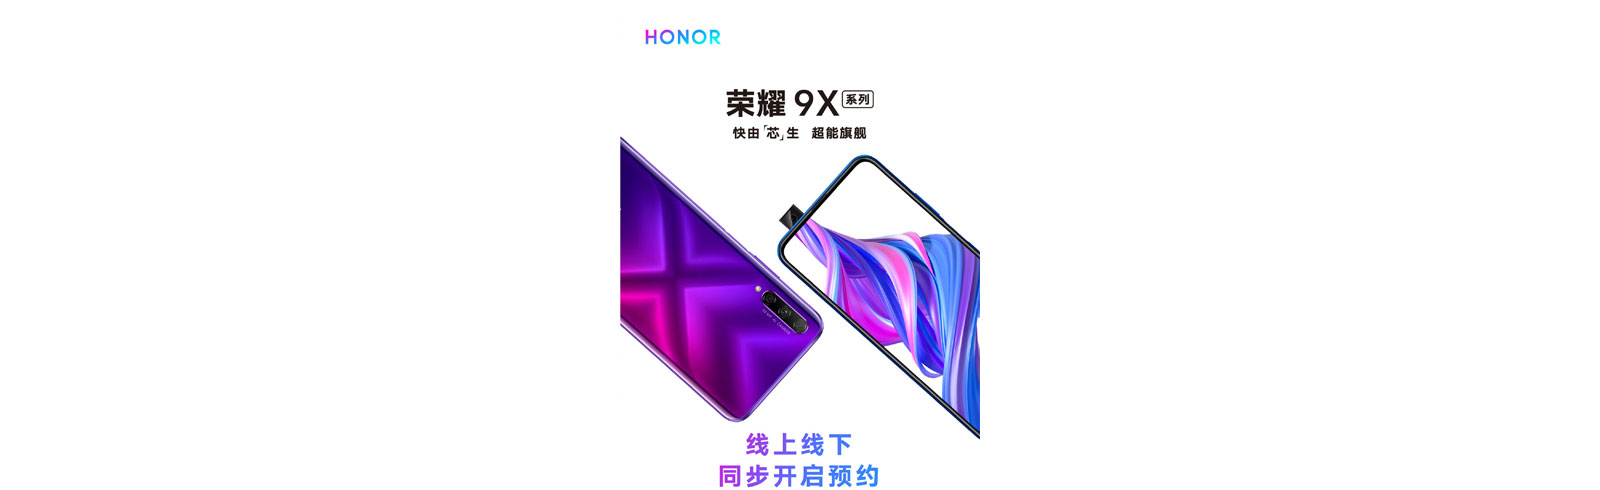 Huawei announced the Honor 9X and Honor 9X Pro